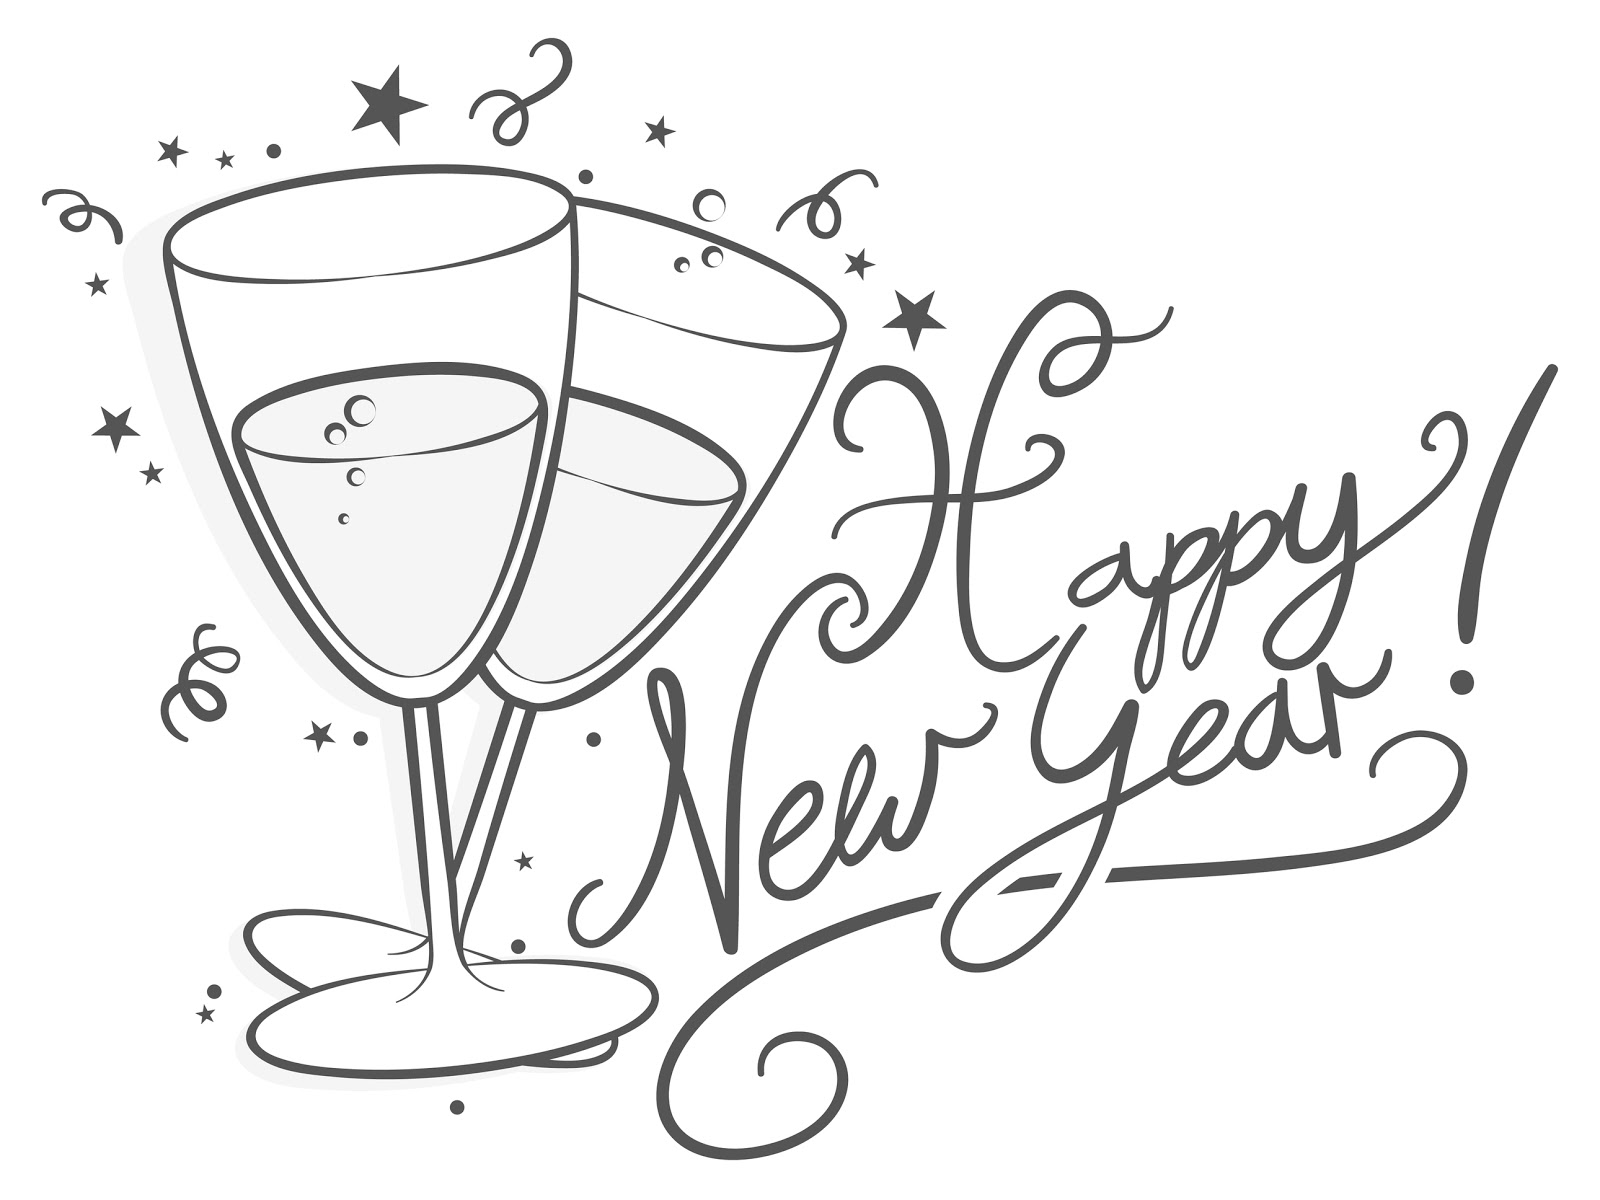 Similiar New Year S Eve Black And White Clip Art Keywords.